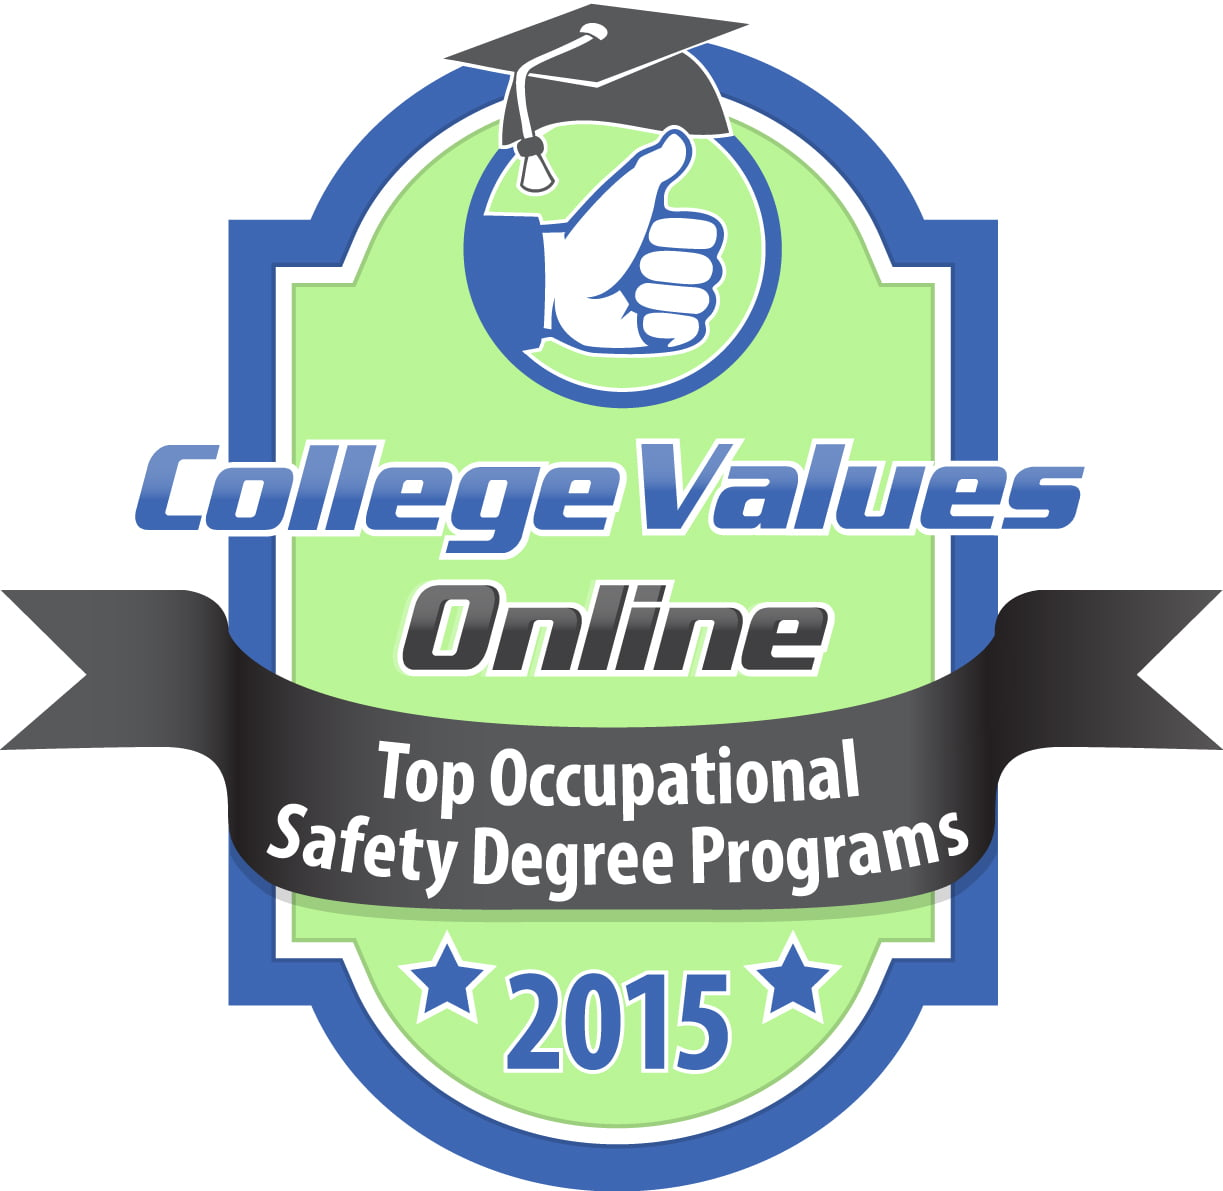 best values in occupational safety degree programs college college values online top occupational safety degree programs click here for high resolution badge